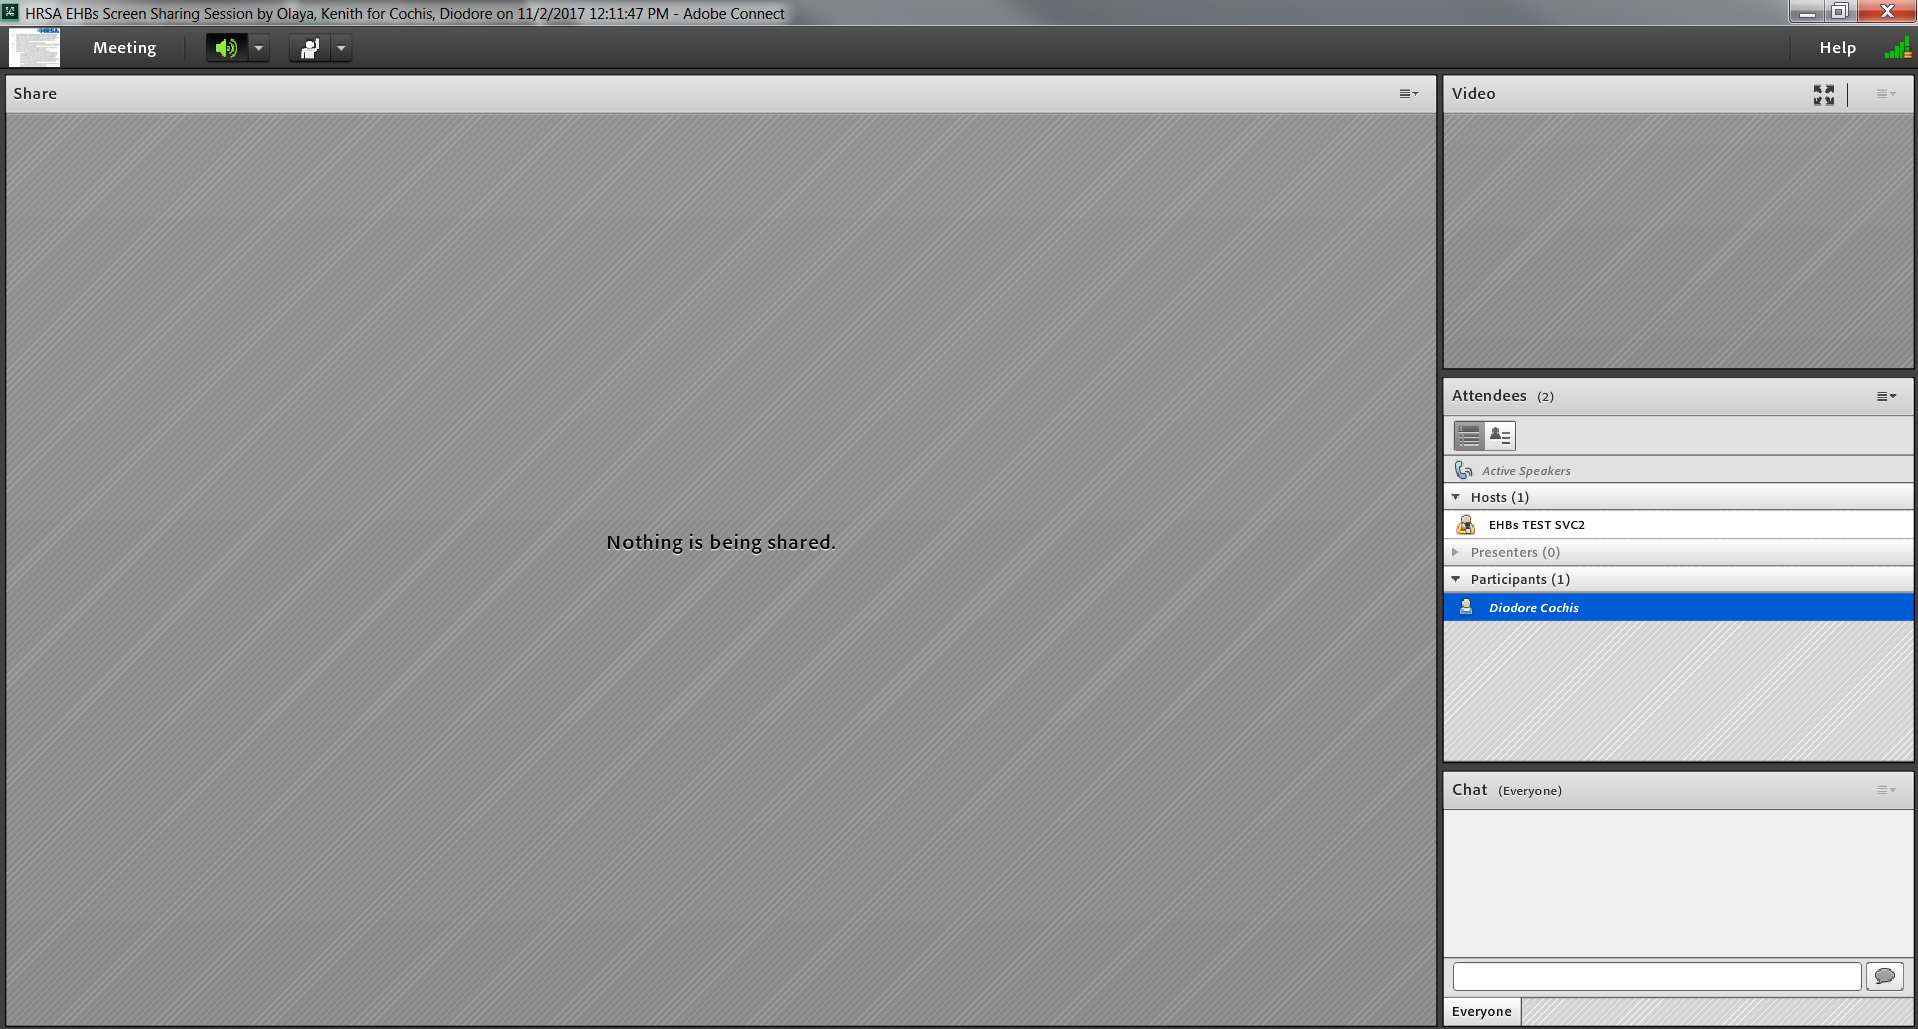 Screenshot of Adobe Connect Screen Sharing Session